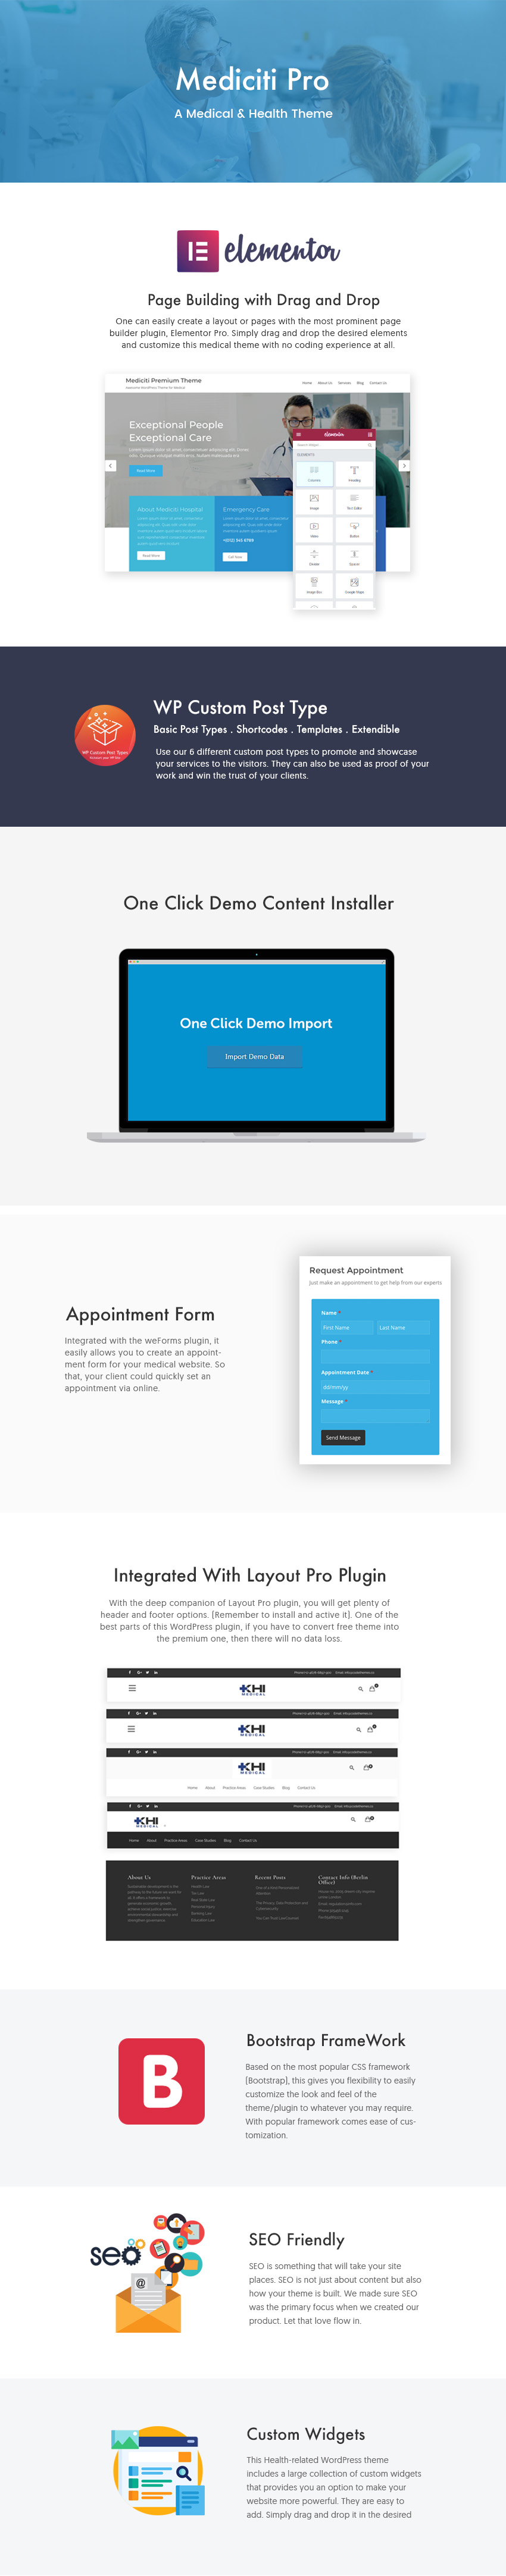 mediciti-pro-theme-features